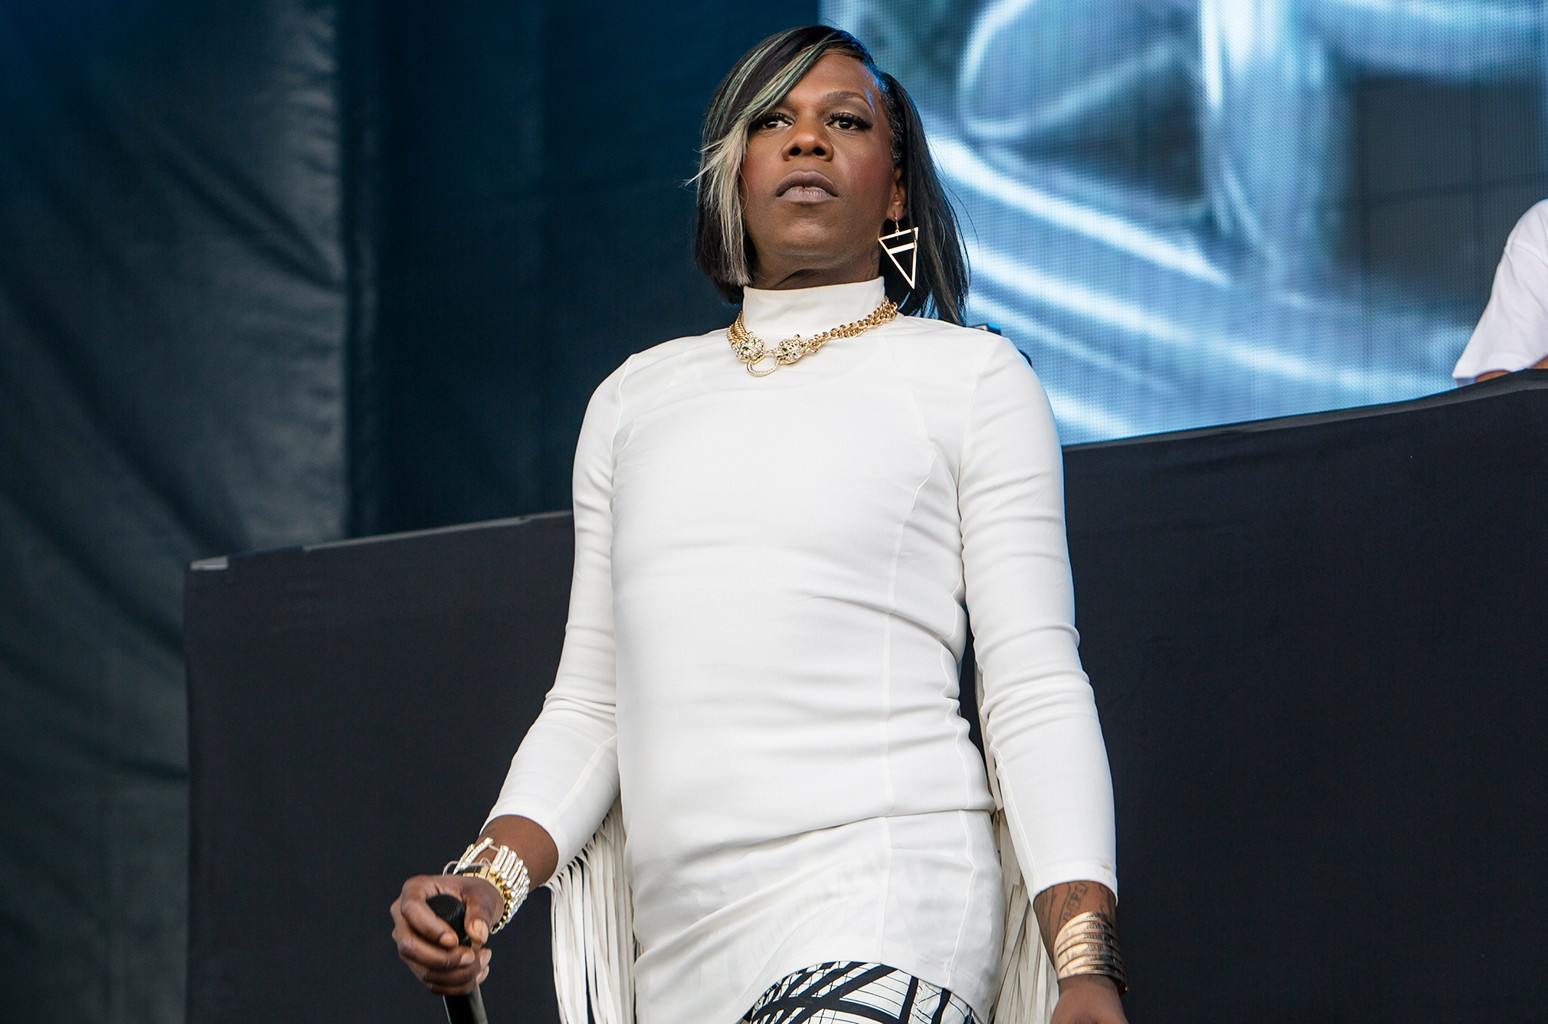 Big Freedia performs during the Buku Music + Arts Festival